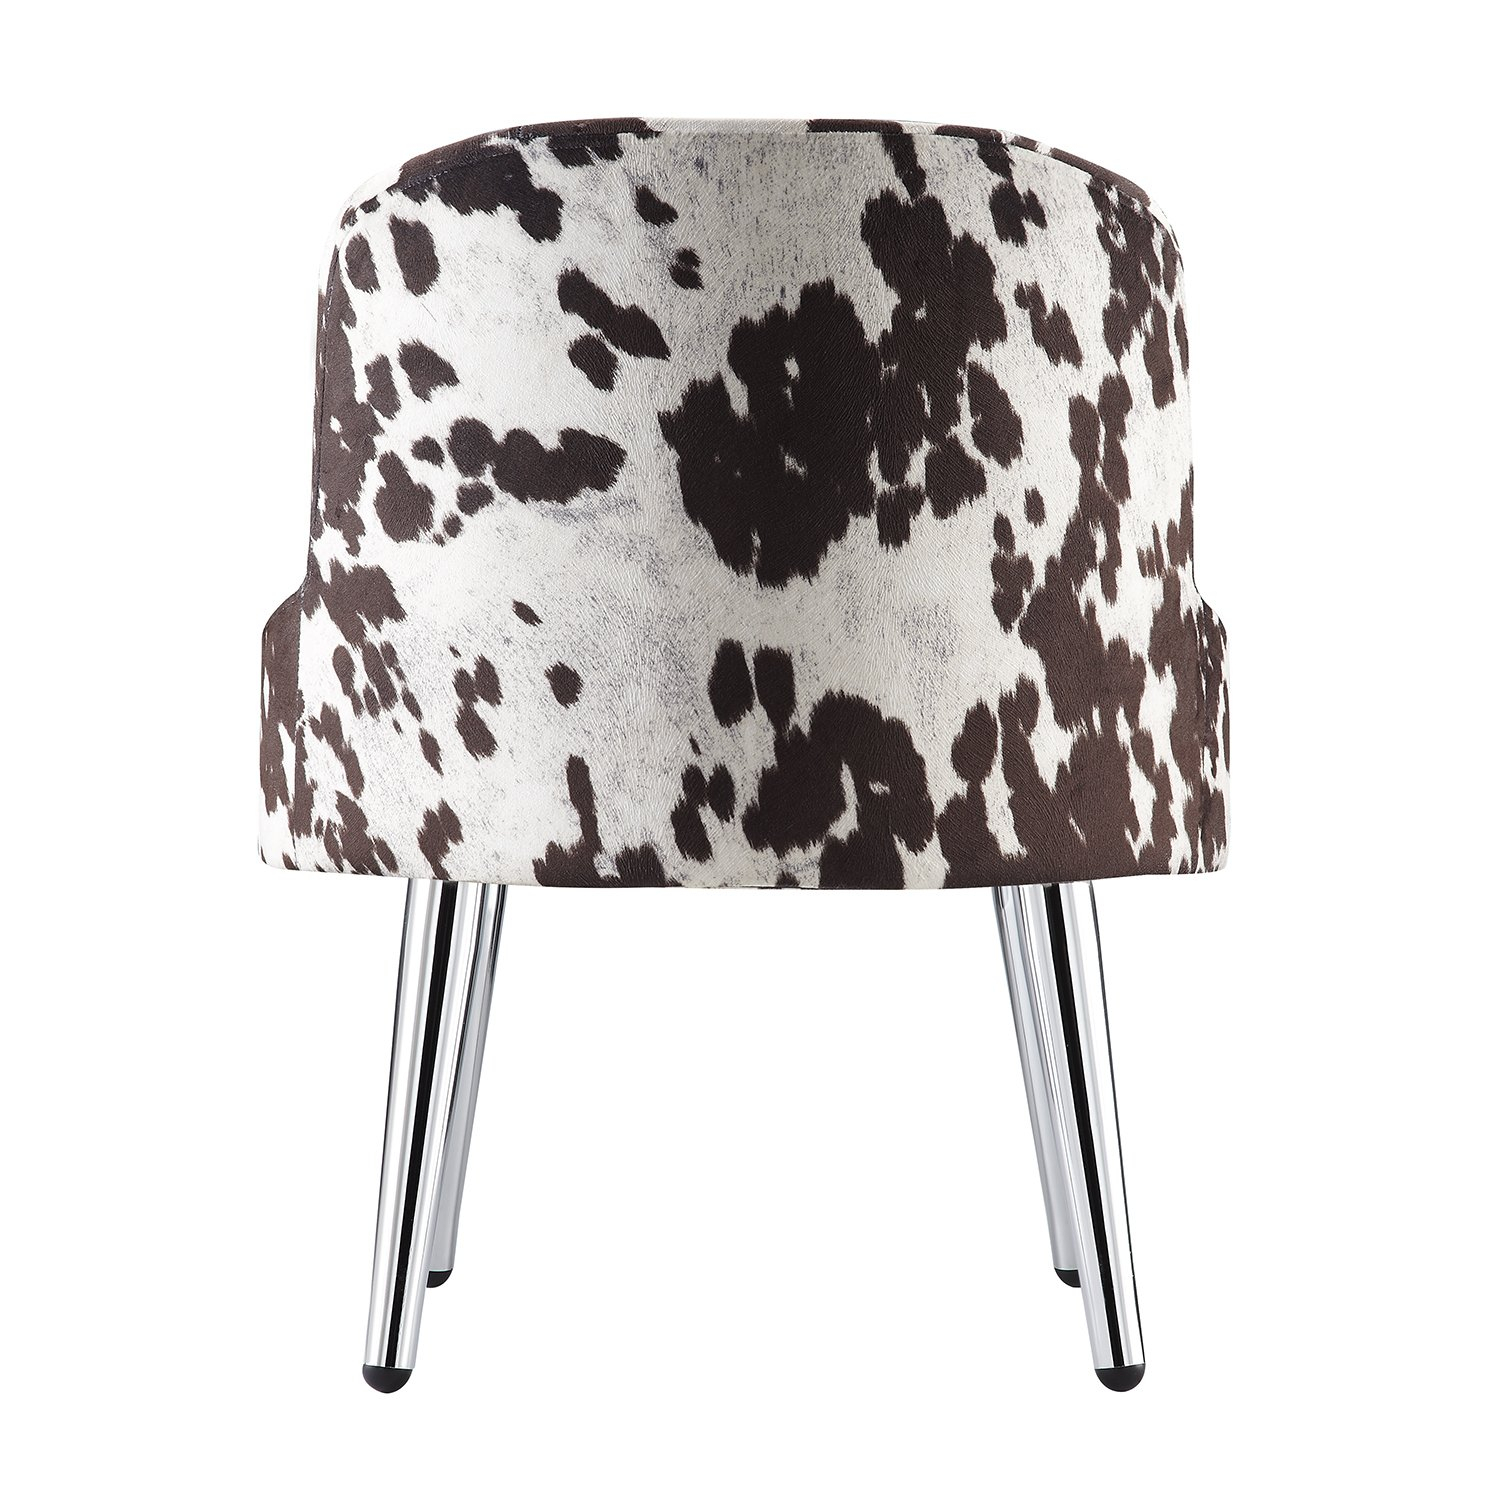 Shop Tribecca Home Bridgeport Ergonomic Contour Cowhide Fabric Inside Circuit Swivel Accent Chairs (Image 16 of 20)